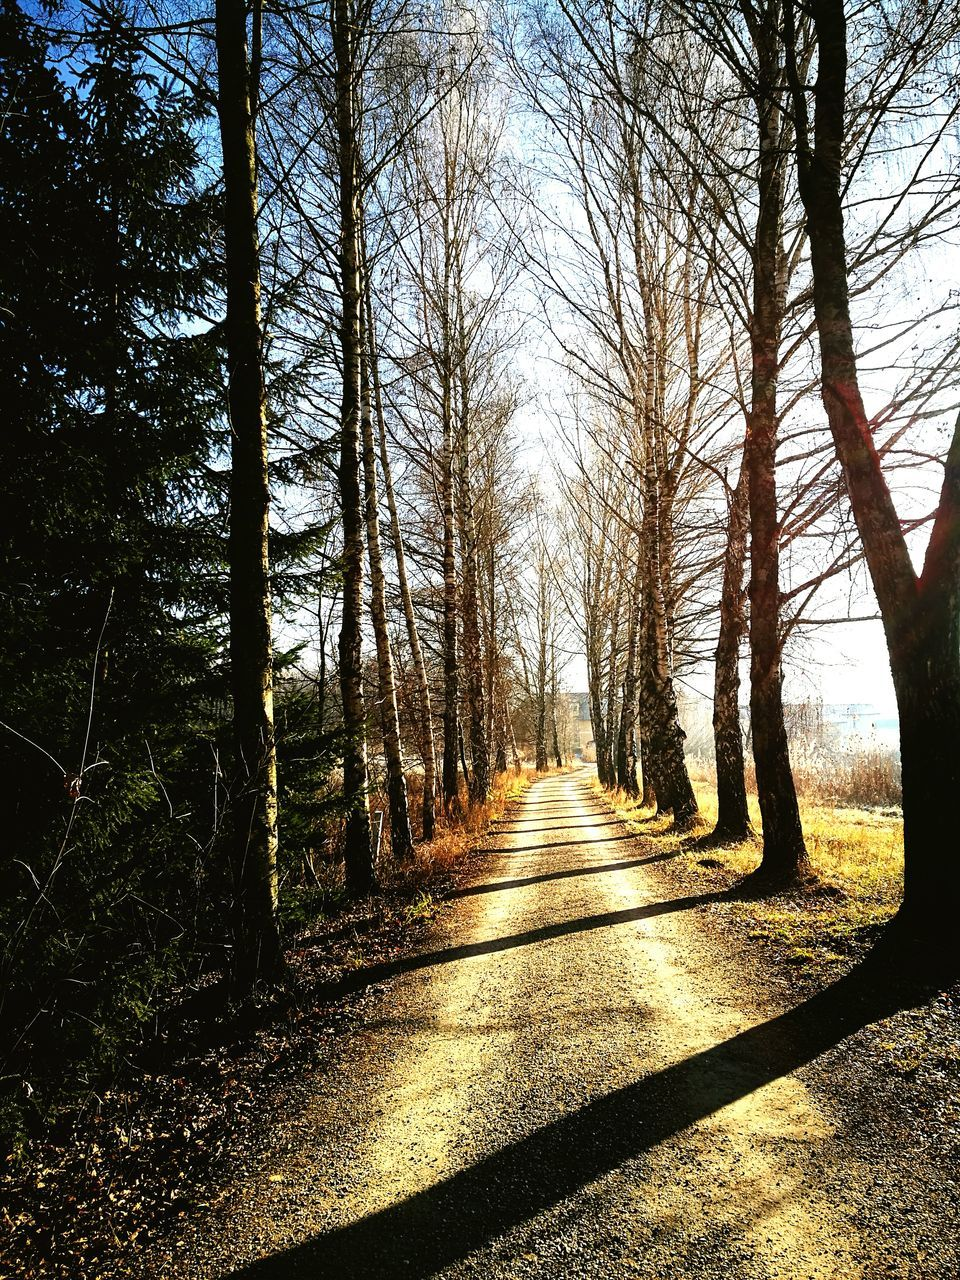 tree, the way forward, nature, diminishing perspective, forest, tranquil scene, day, tranquility, sunlight, scenics, beauty in nature, outdoors, landscape, bare tree, no people, tree trunk, shadow, road, branch, sky